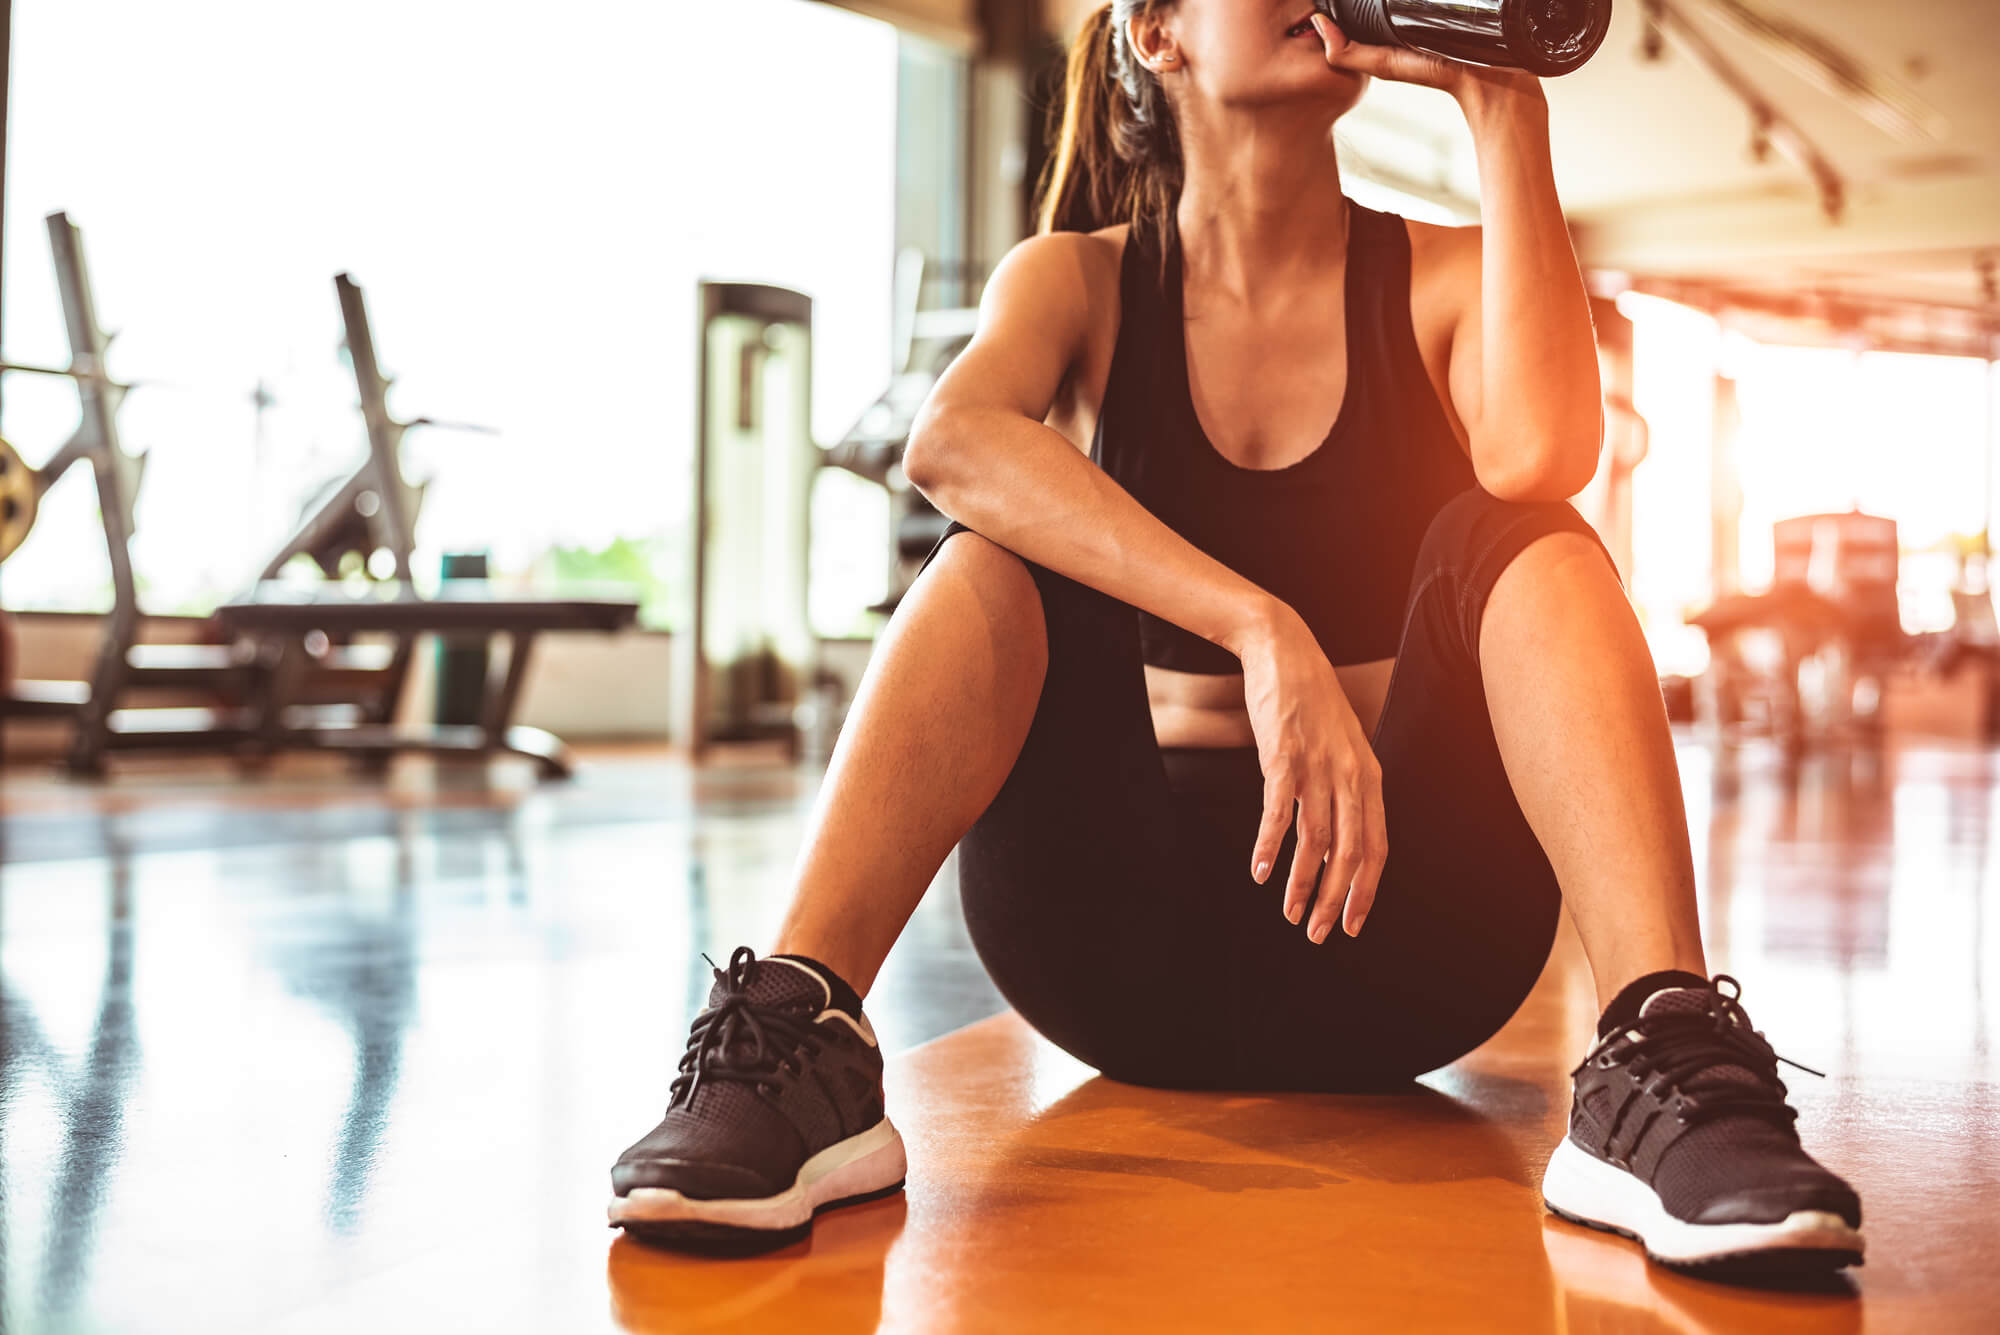 So Long, Soreness! 5 Easy Workout Recovery Tips